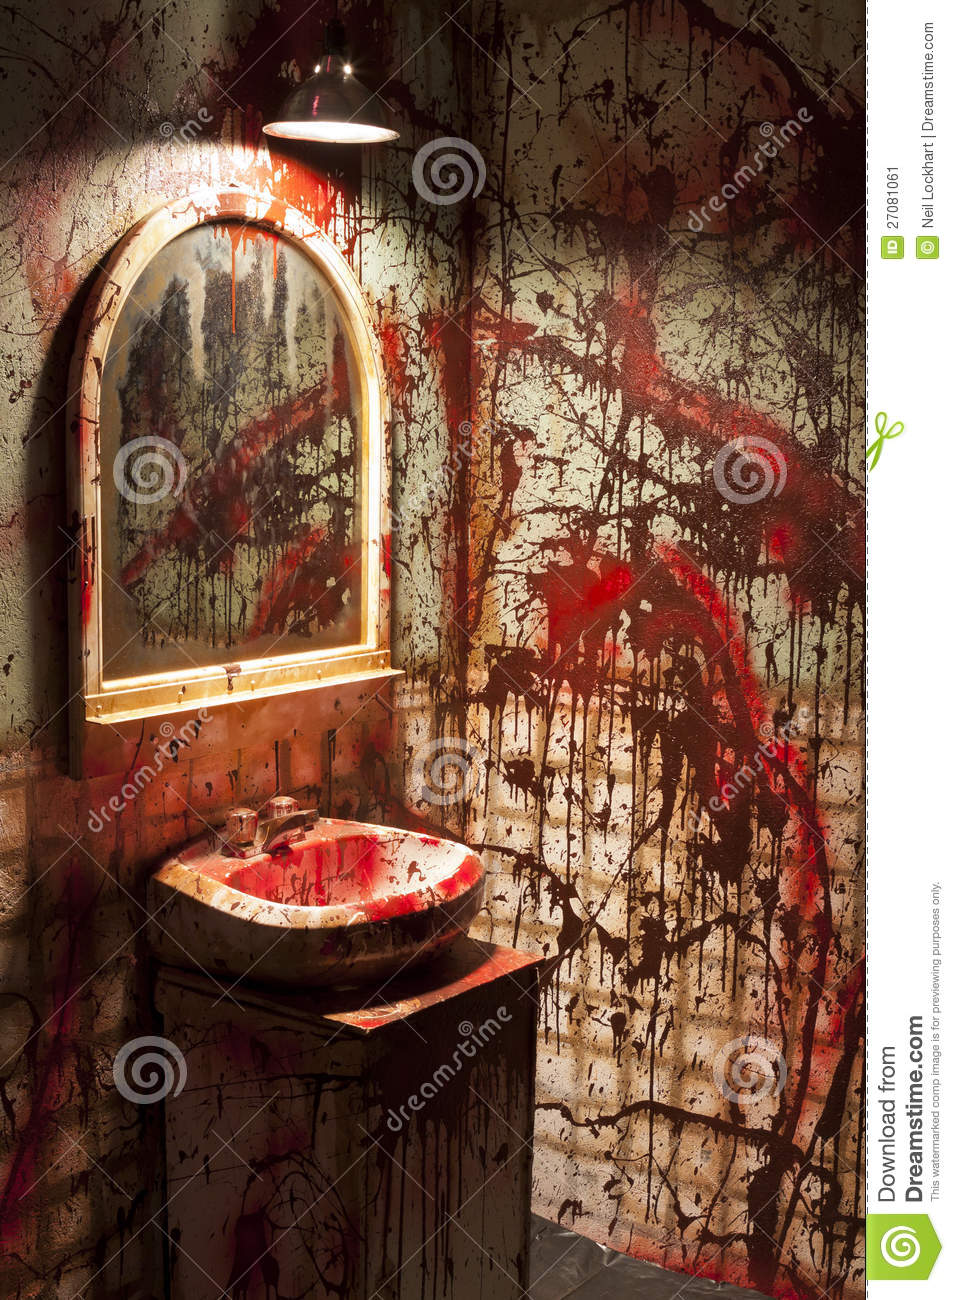 Set Baño Bloody Bathroom Set (fake) Stock Image. Image Of Restroom